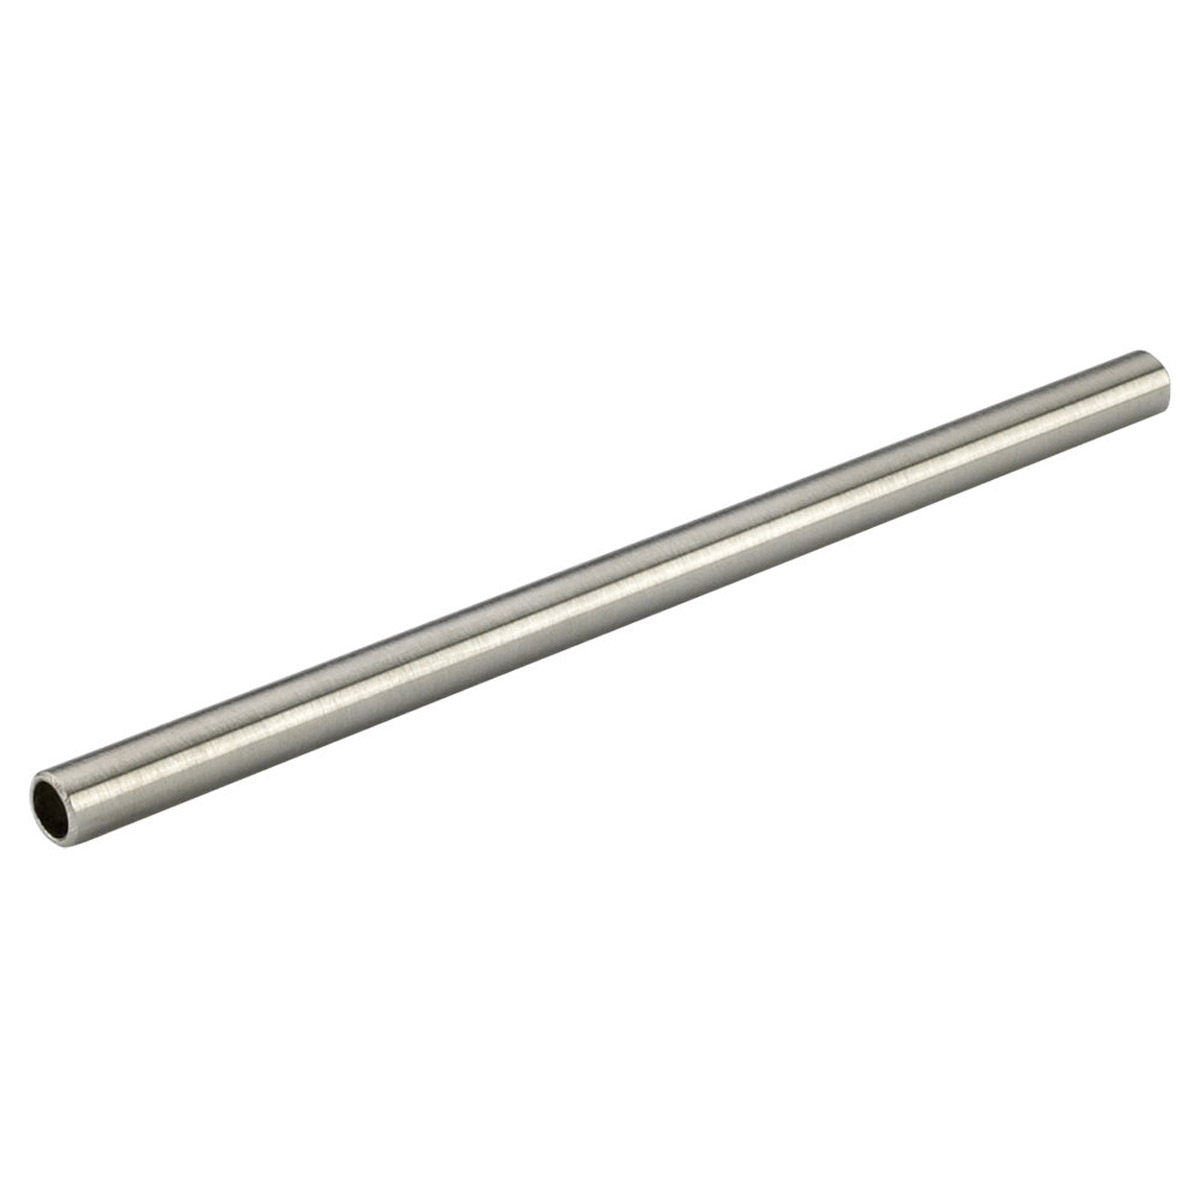 Sea Gull Lighting RTx 11in Extension Stem in Brushed Stainless 95321-98